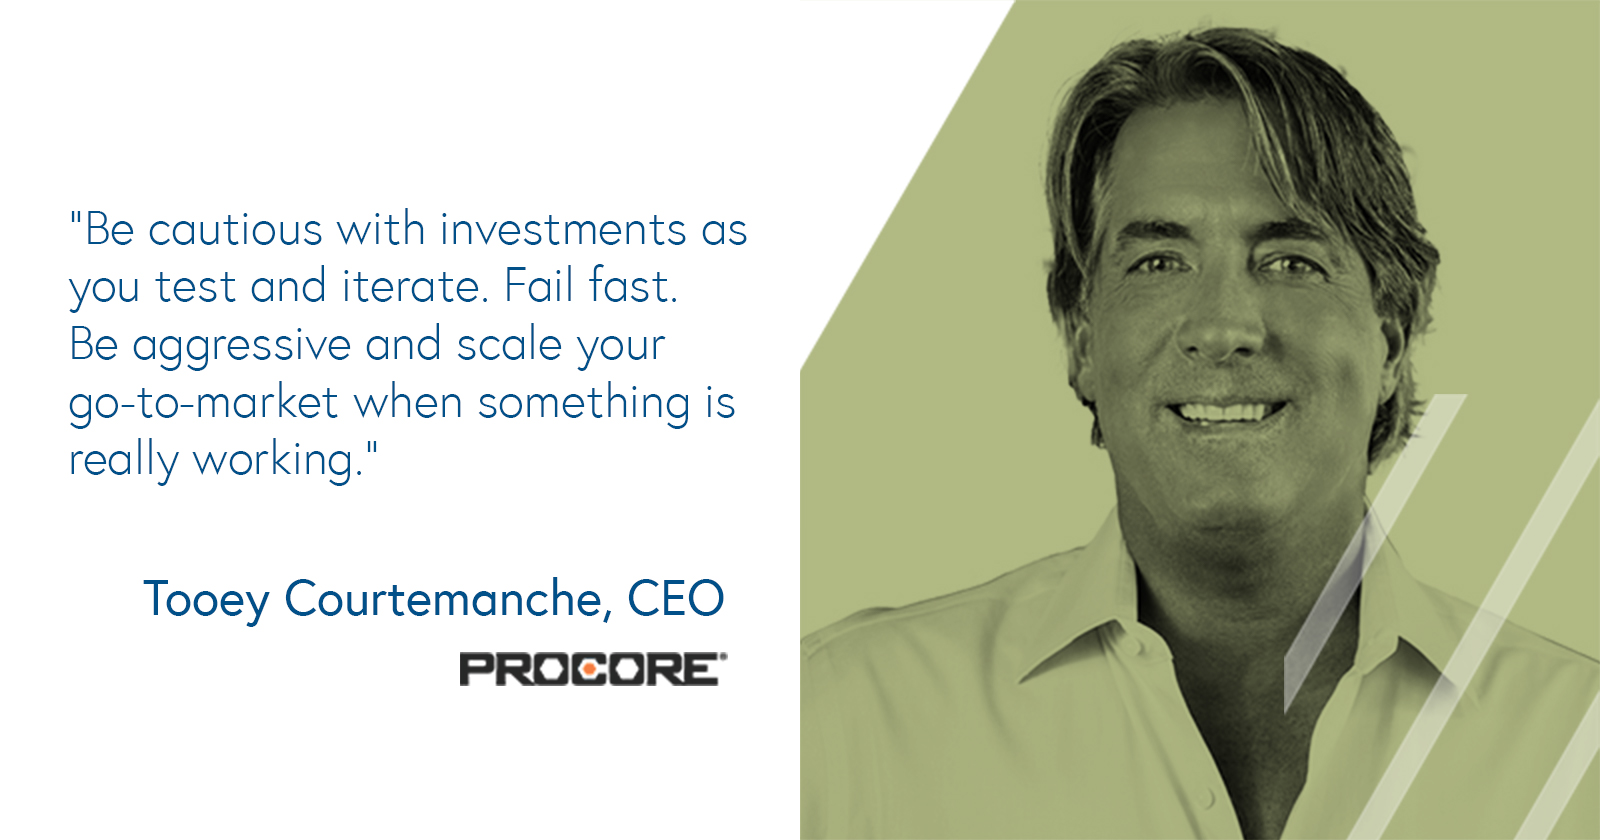 Tooey Courtemanche, CEO of Procore on investing in Sales and Marketing